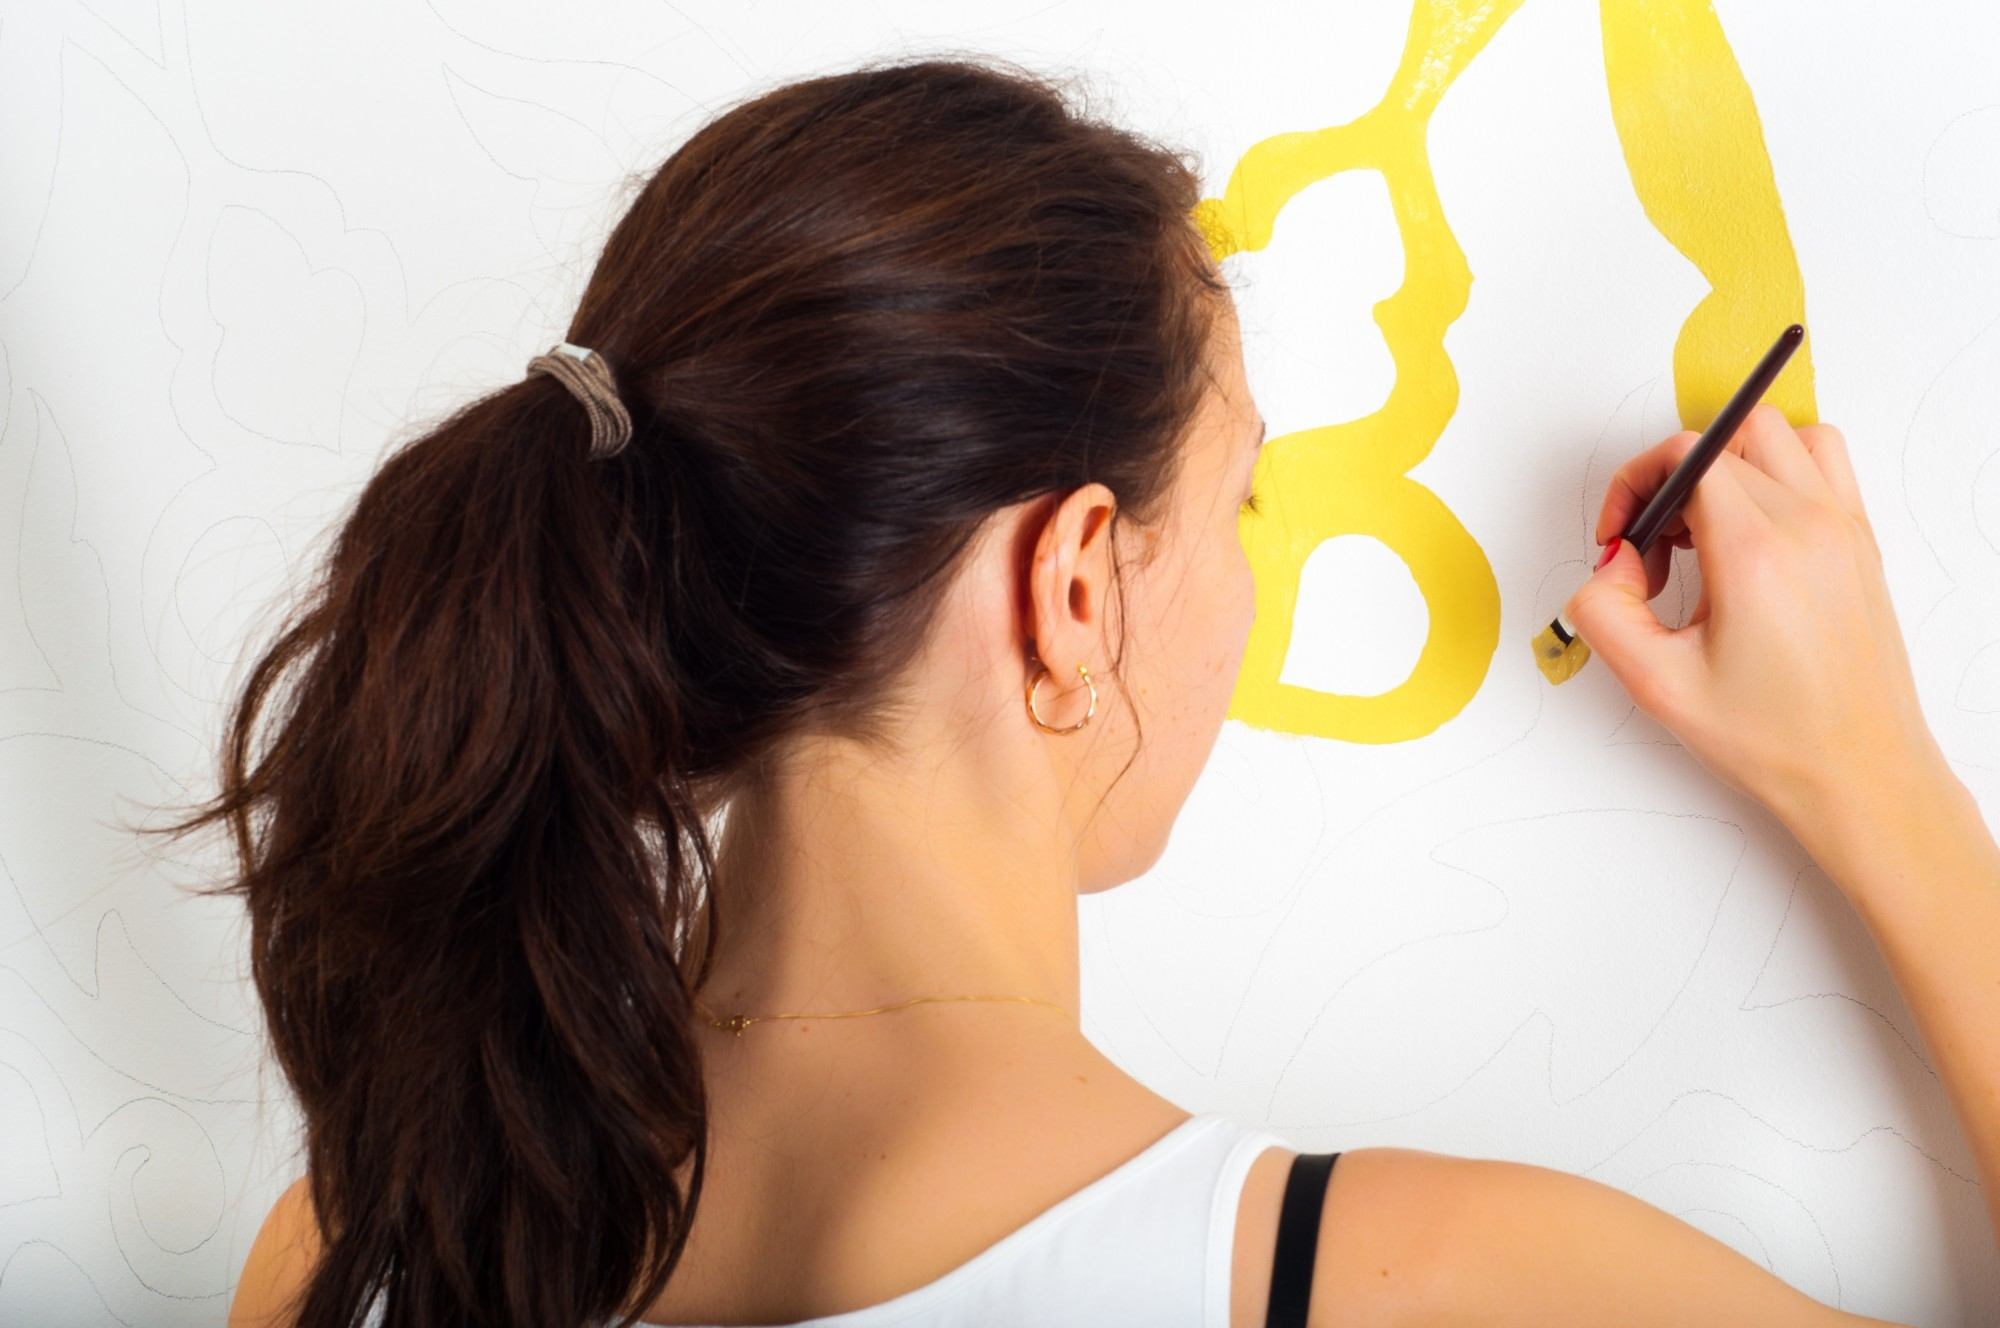 image - To Paint or Not to Paint? 5 Signs It's Time to Repaint Your Walls